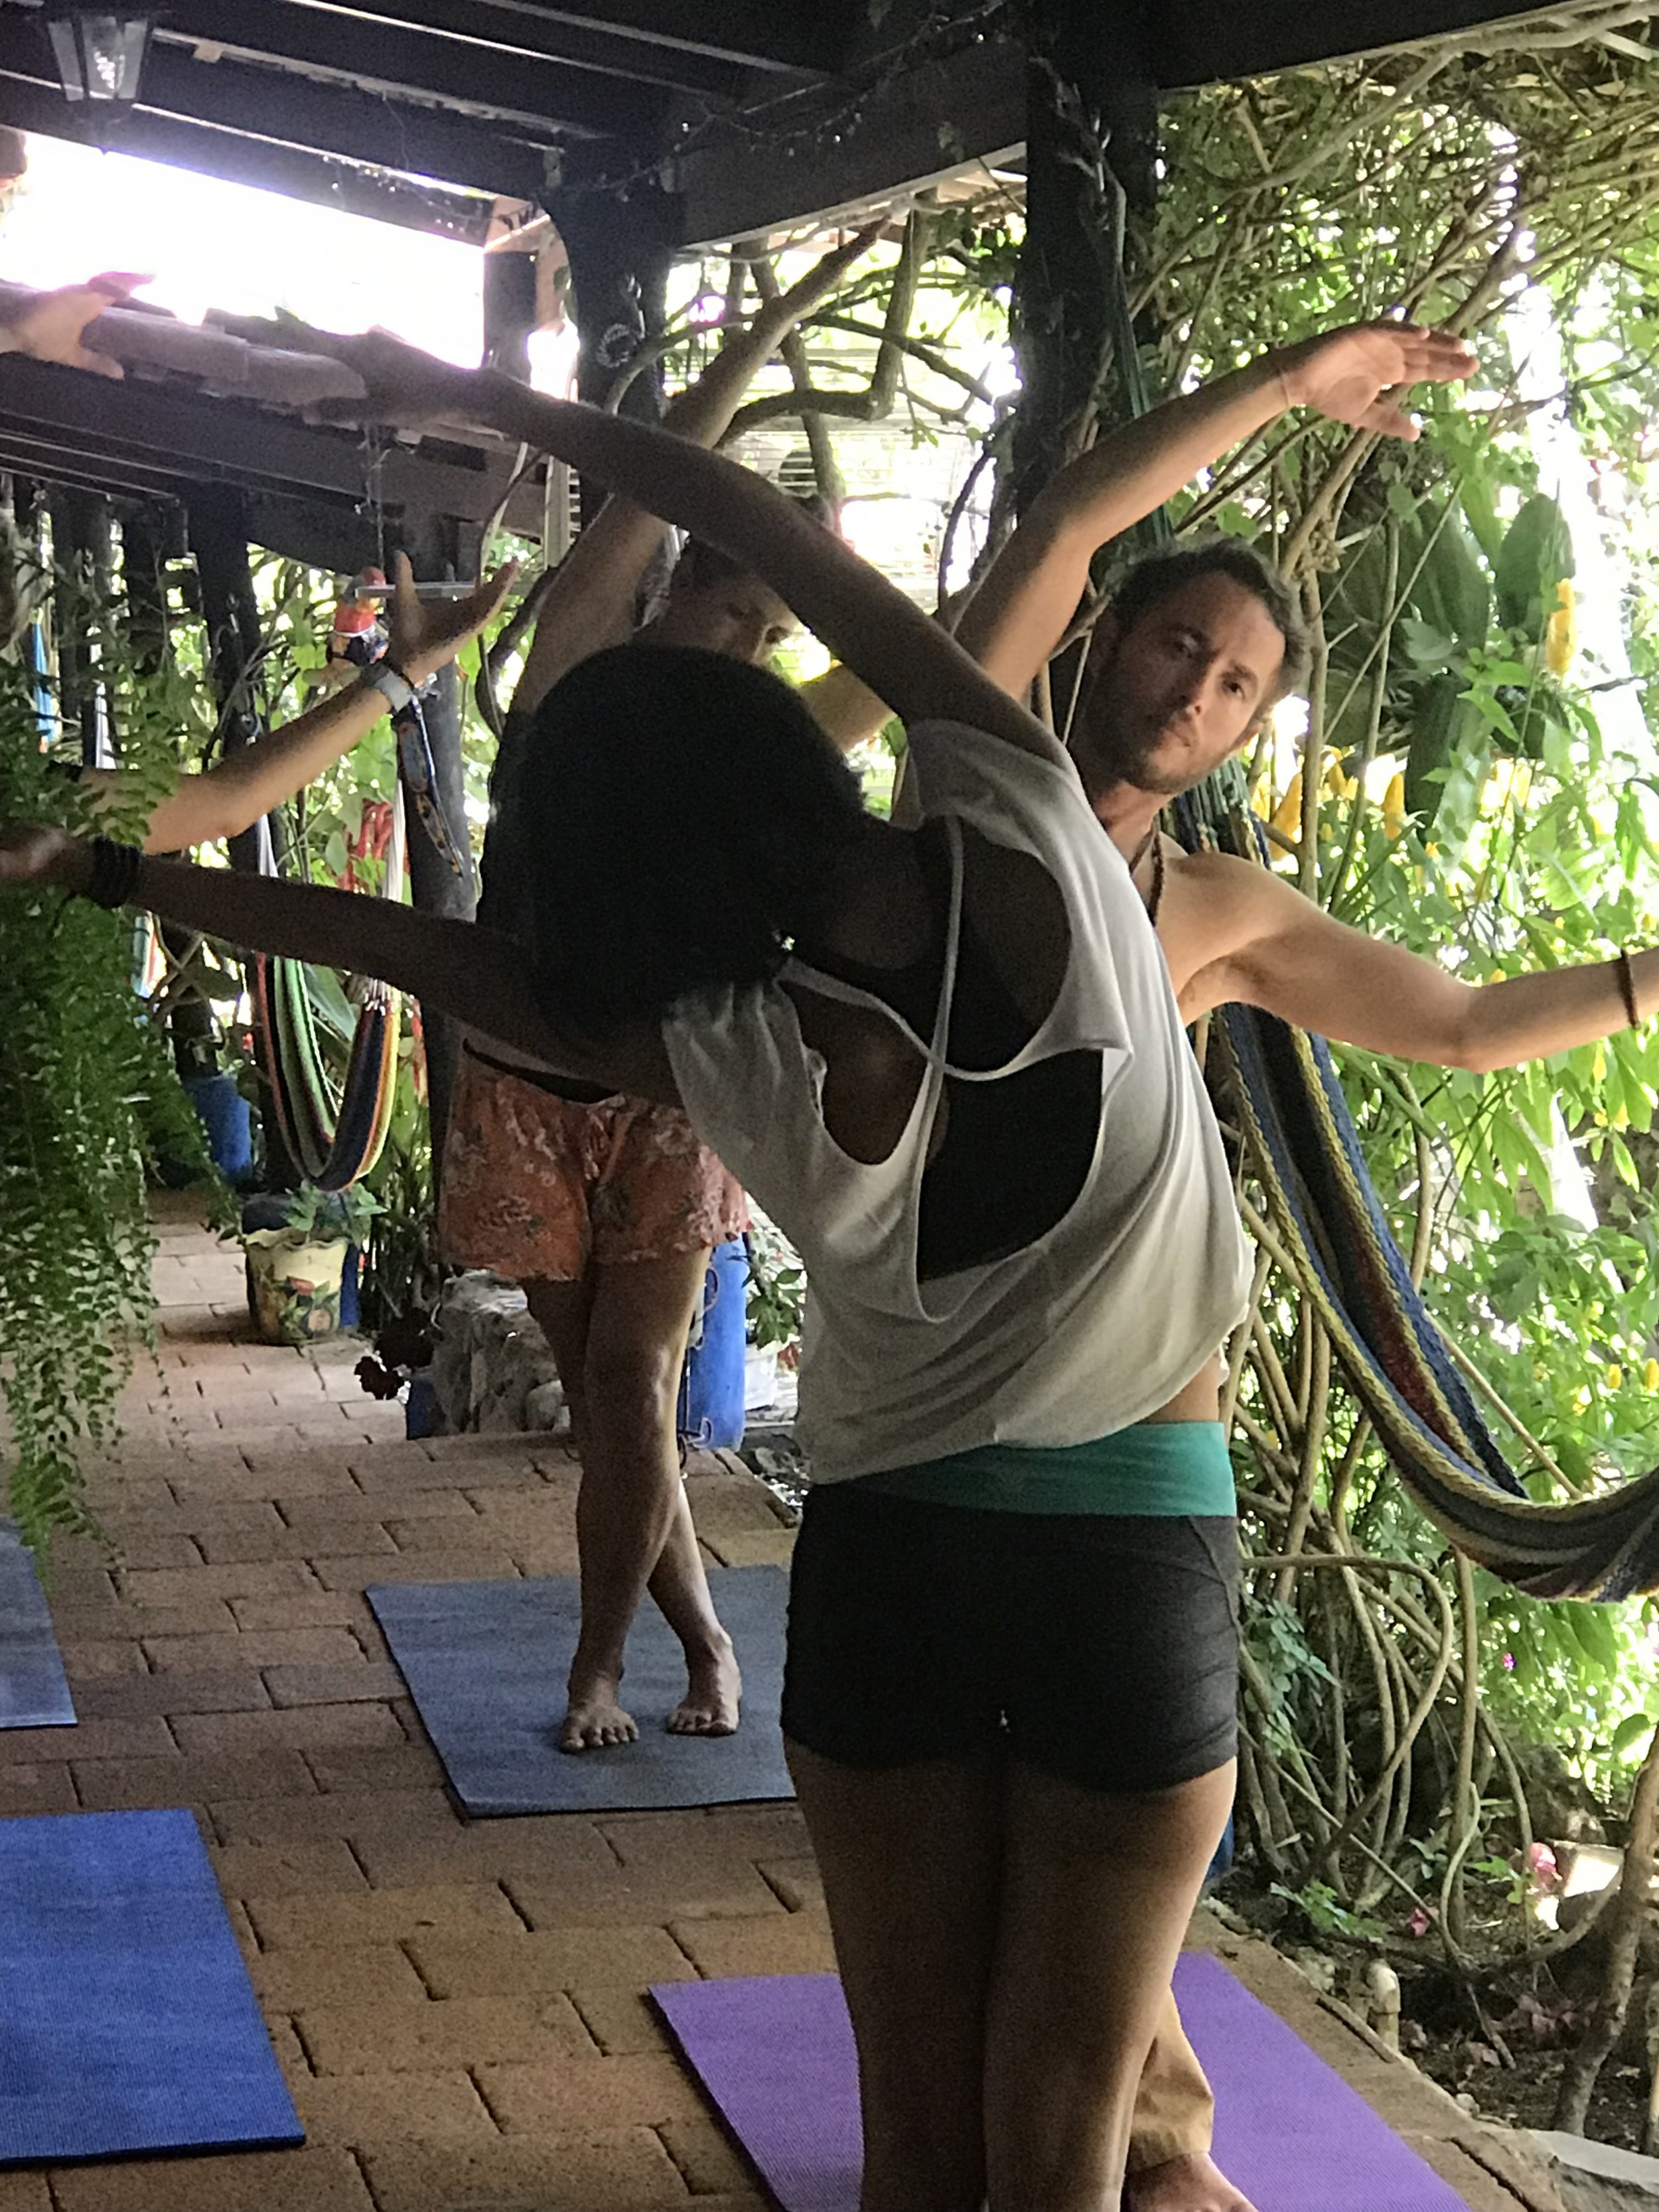 Stephanie Enbysk, RYT 200 - Stephanie started her yoga journey in January 2018 at YiA Yoga with Lead Trainer Doris Martinez. She came to the mat to discover herself on deeper levels of health and happiness with the motivation of spreading that knowledge to others. In March 2019, Stephanie participated in a 200 Hour YTT at YiA Yoga and became certified. During the training she discovered yoga as her passion and grew deeper in the ancient holistic knowledge and practice. She went beyond the asana and felt the true connection between the body and mind through meditation, breathwork, philosophical discusions and much more that brought a deeper level of peace to her soul. Stephanie seeks to hold a space of mutual trust and friendship within her classes and empowers her students to love and respect their bodies.